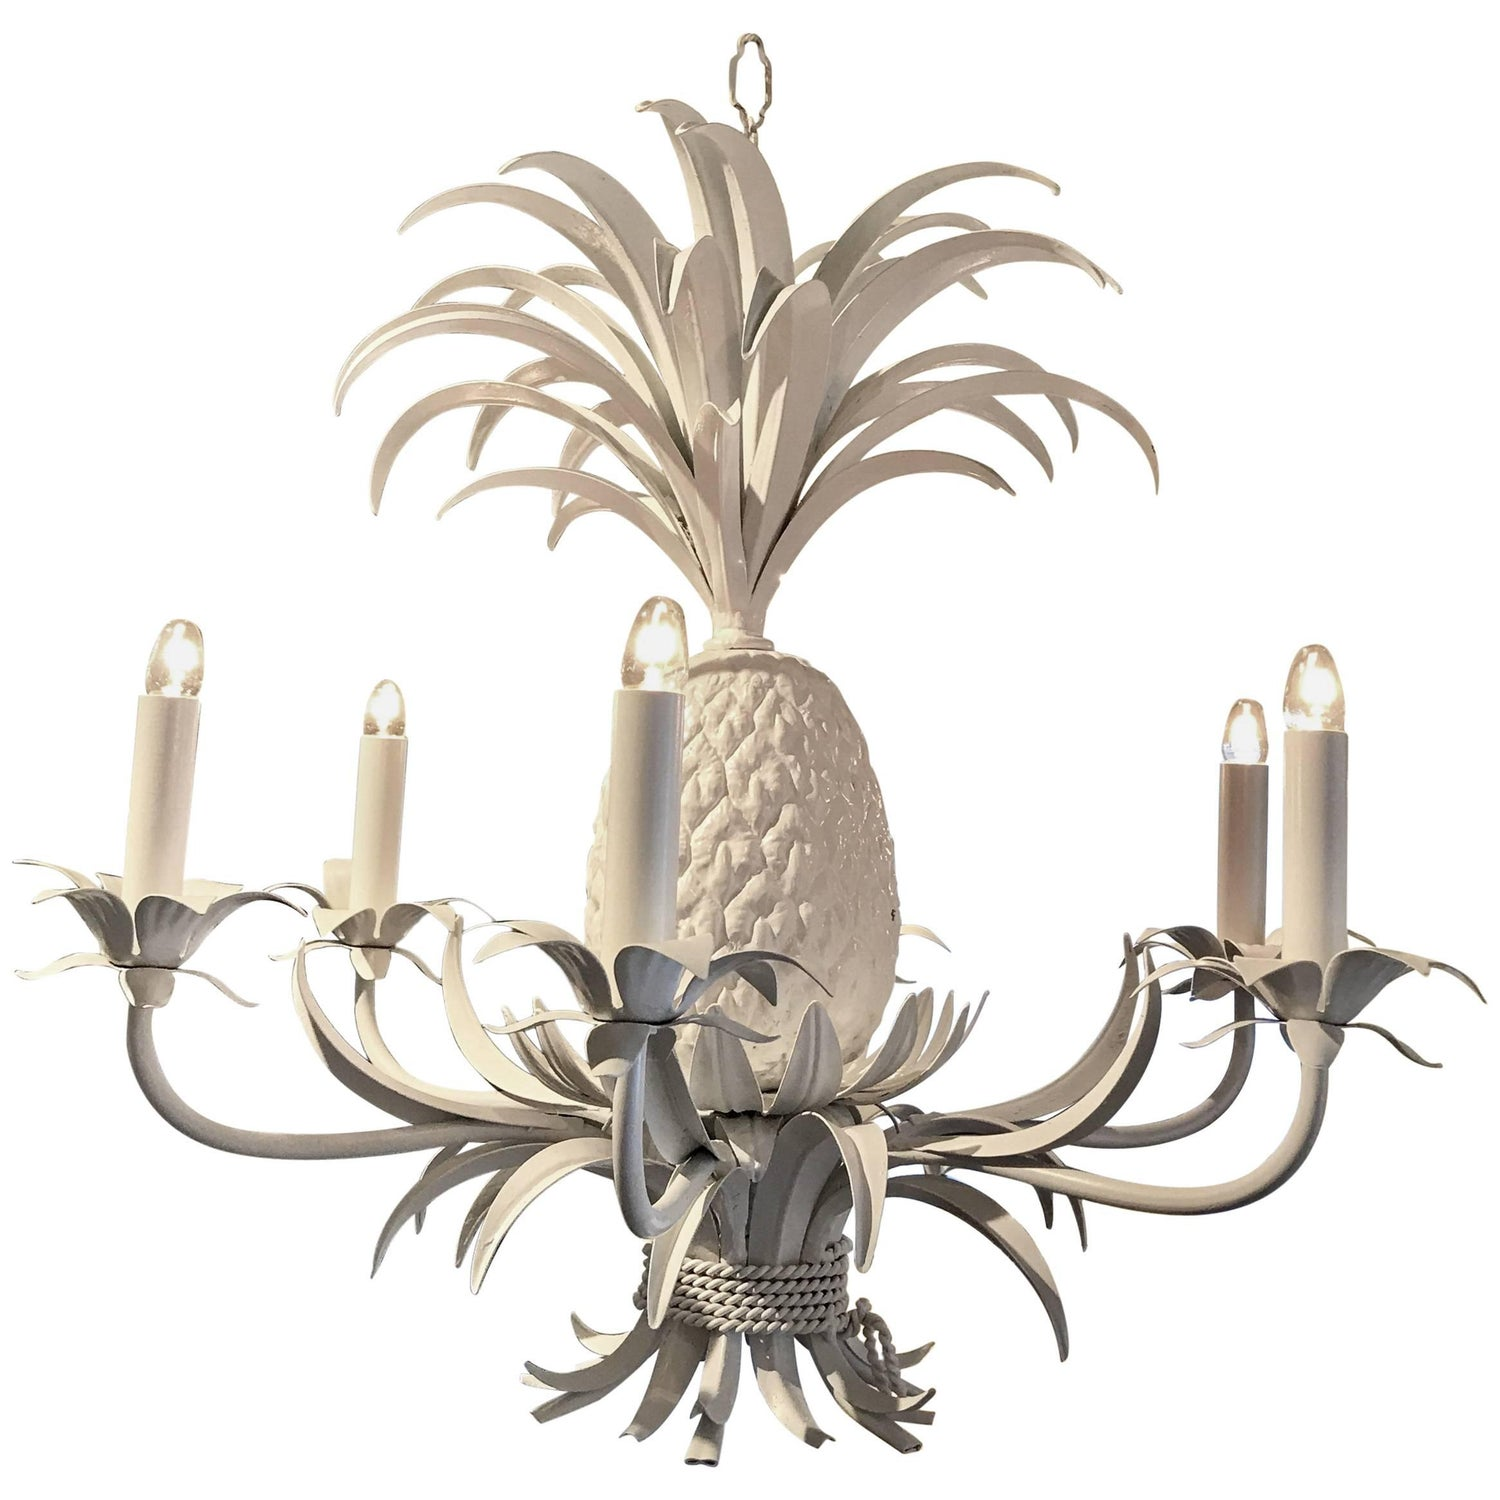 Midcentury Tole Pineapple Chandelier in White For Sale at 1stdibs